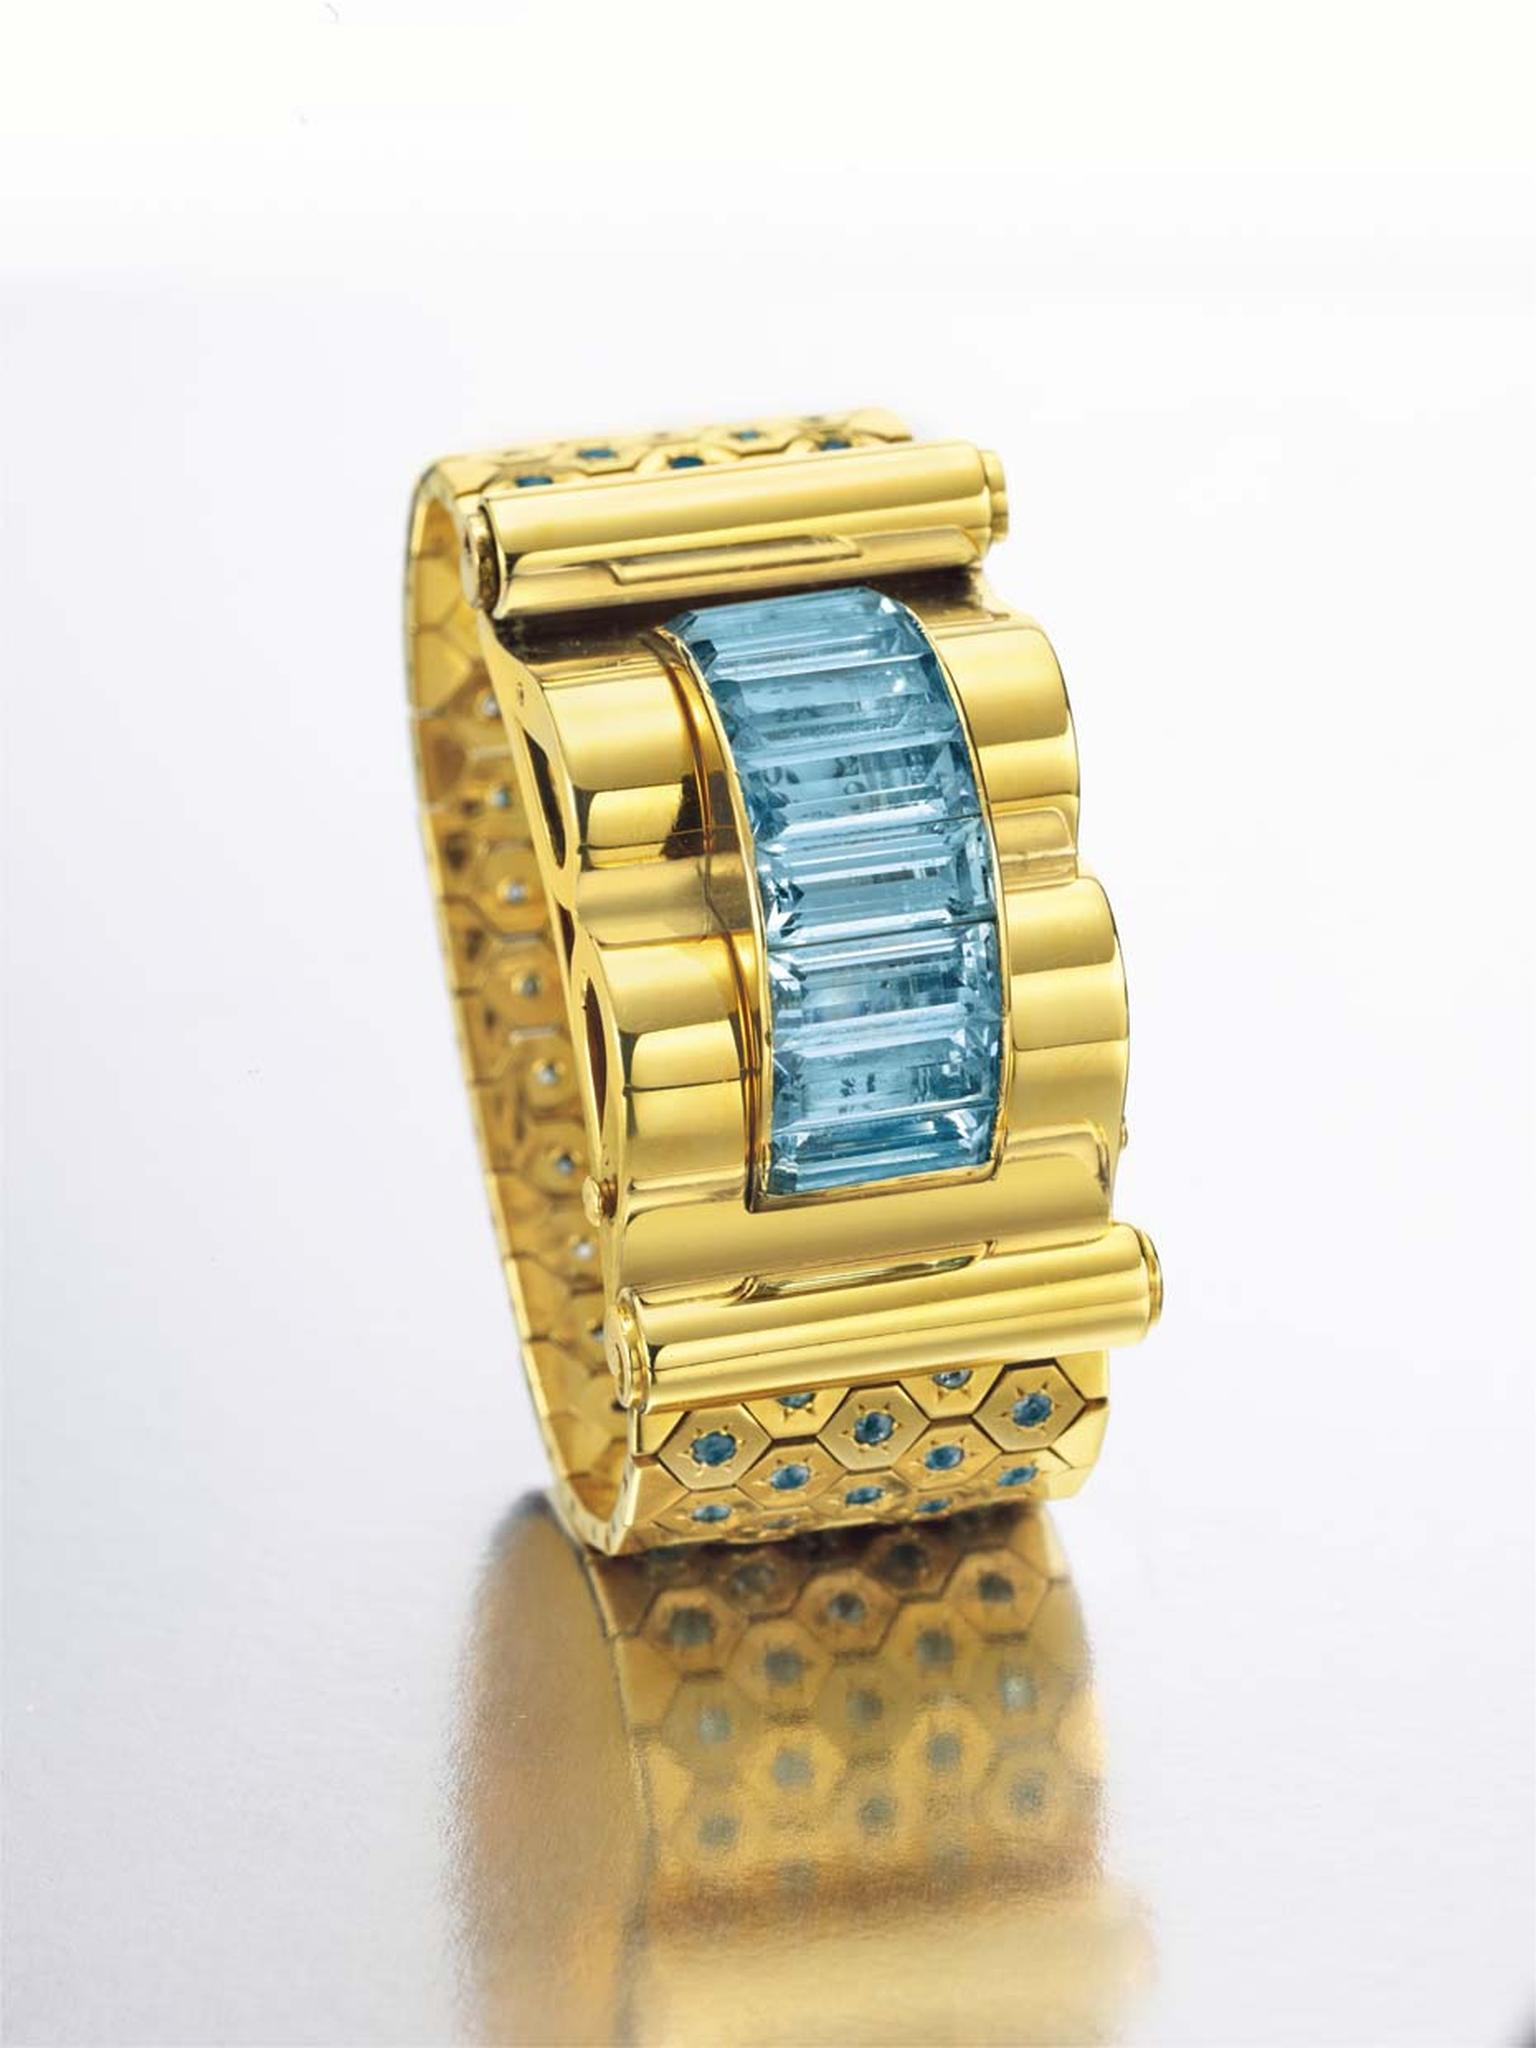 This Van Cleef & Arpels Ludo Hexagone bracelet watch in gold and aquamarine sold for US$68,750 at Christie's New York in 2014.